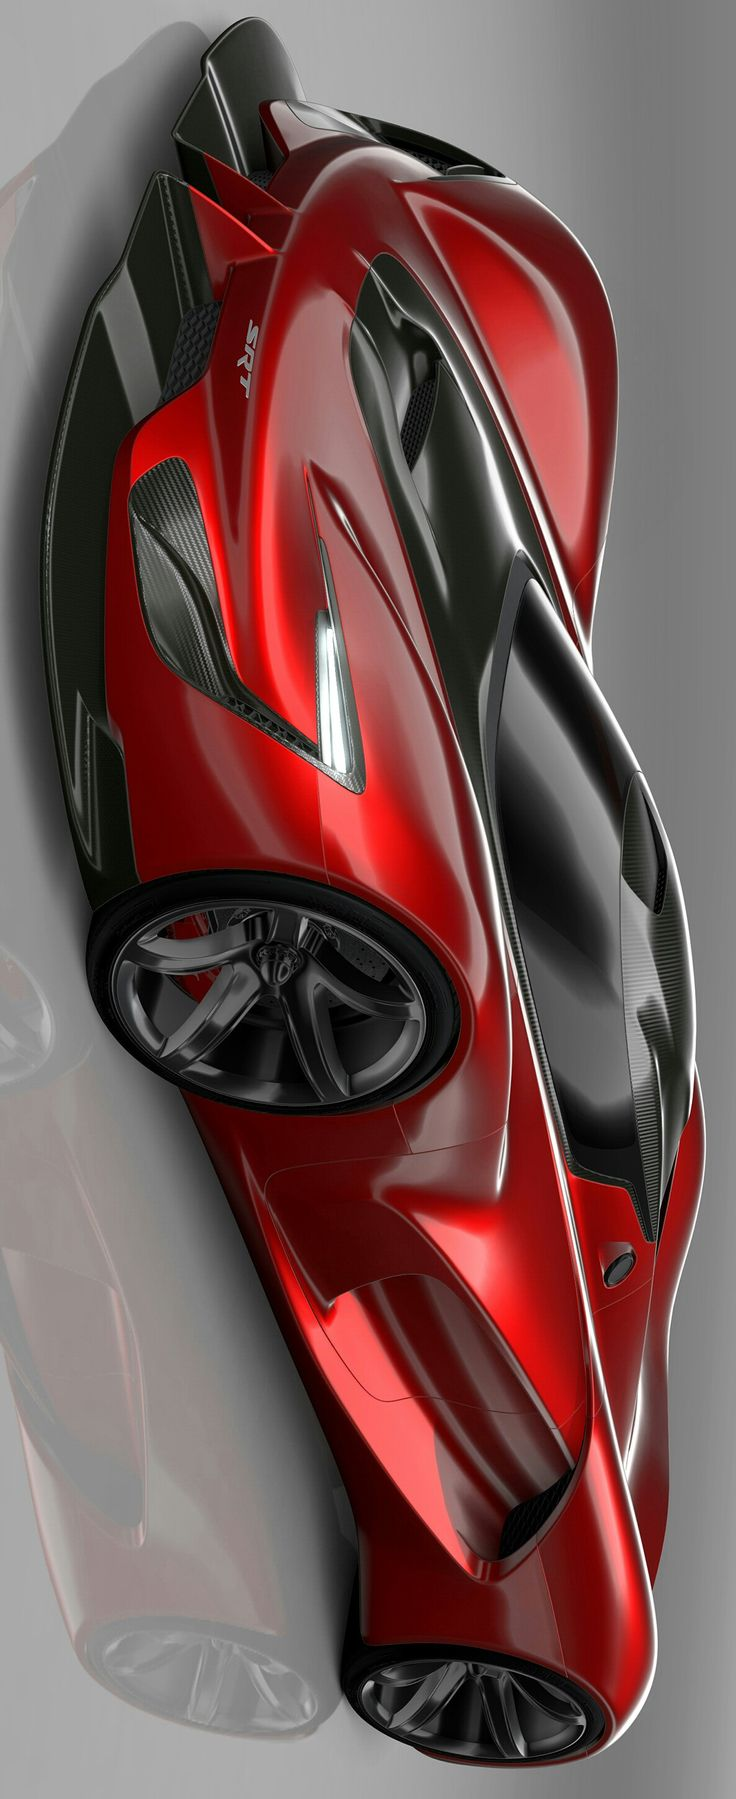 SRT TOMAHAWK VISION GRAN TURISMO by Levon